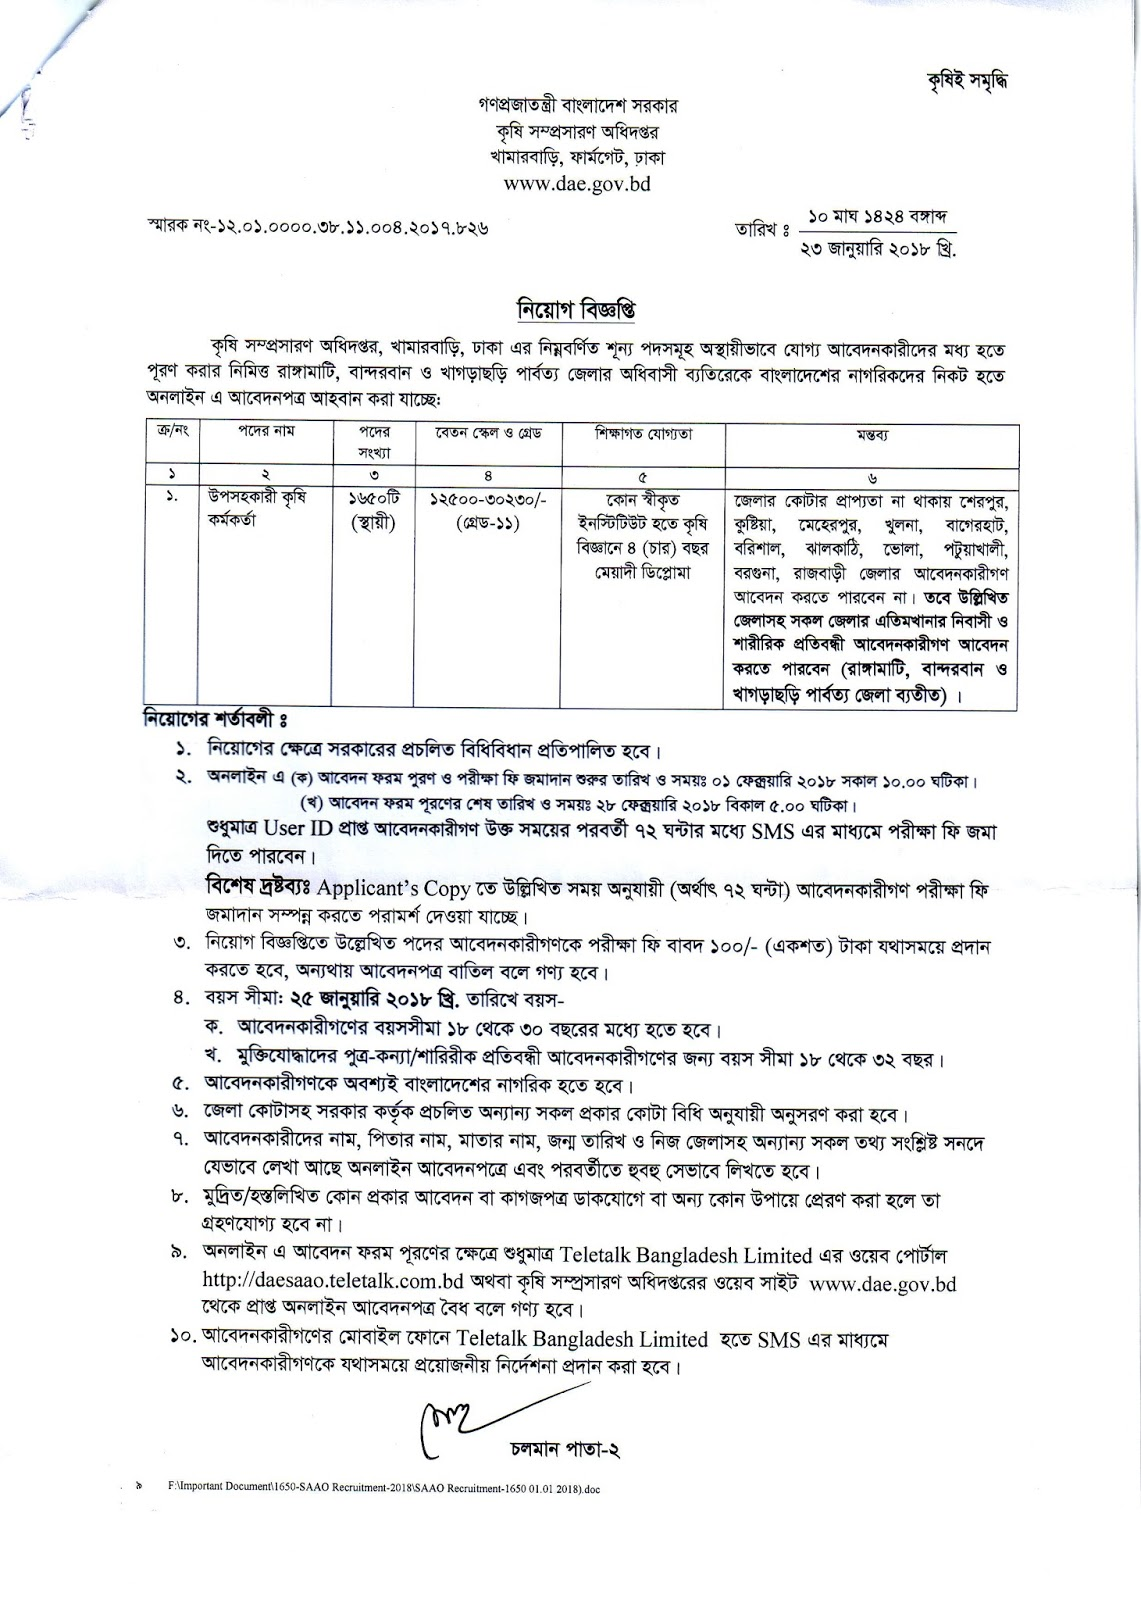 Department of Agricultural Extension (DAE) Recruitment Circular 2018